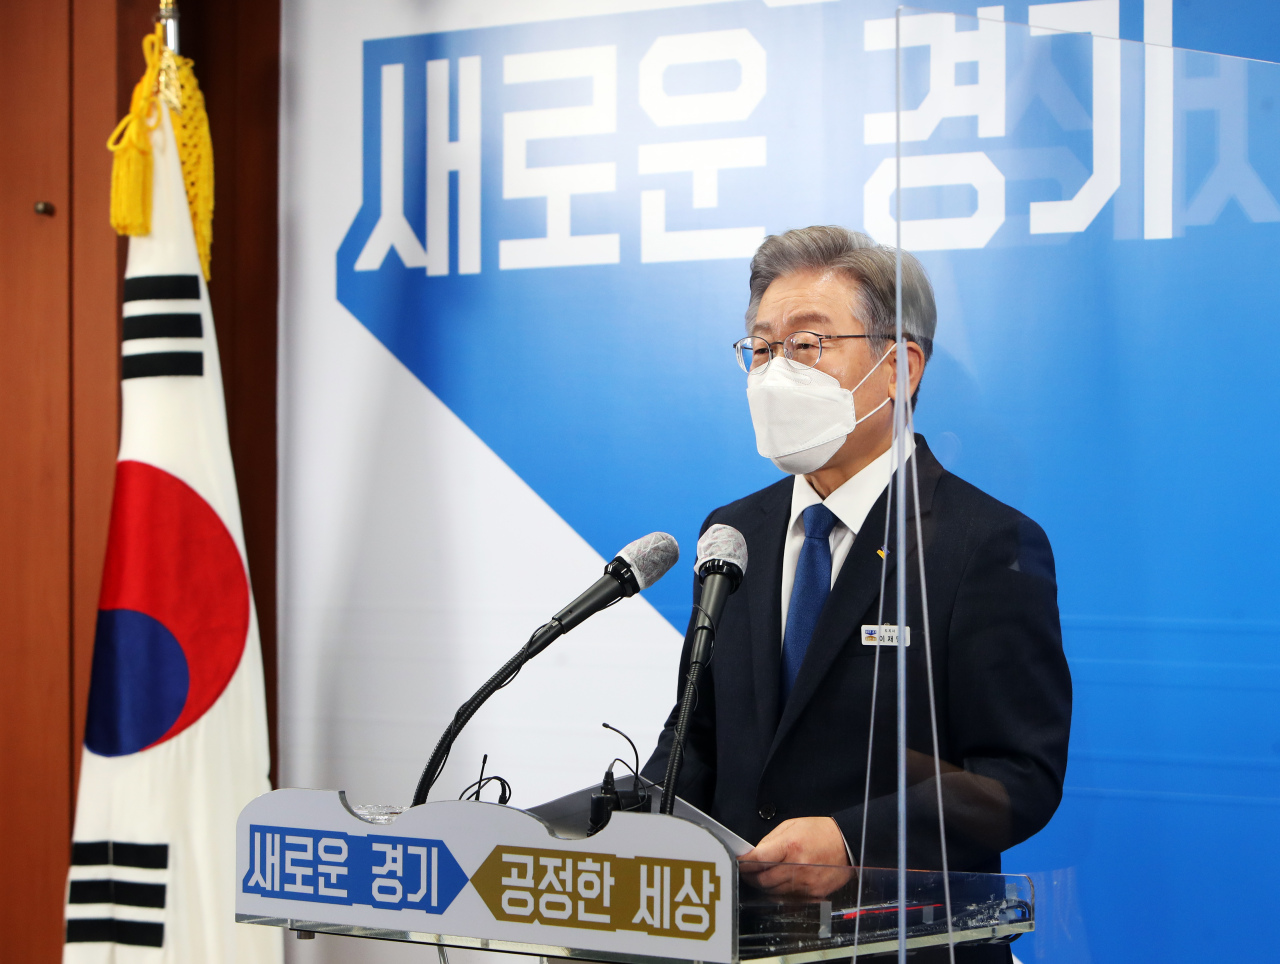 Gyeonggi Province Gov. Lee Jae-myung, who was nominated as the presidential candidate of the ruling Democratic Party (DP), speaks at a special press conference Oct. 12, 2021. (Yonhap)